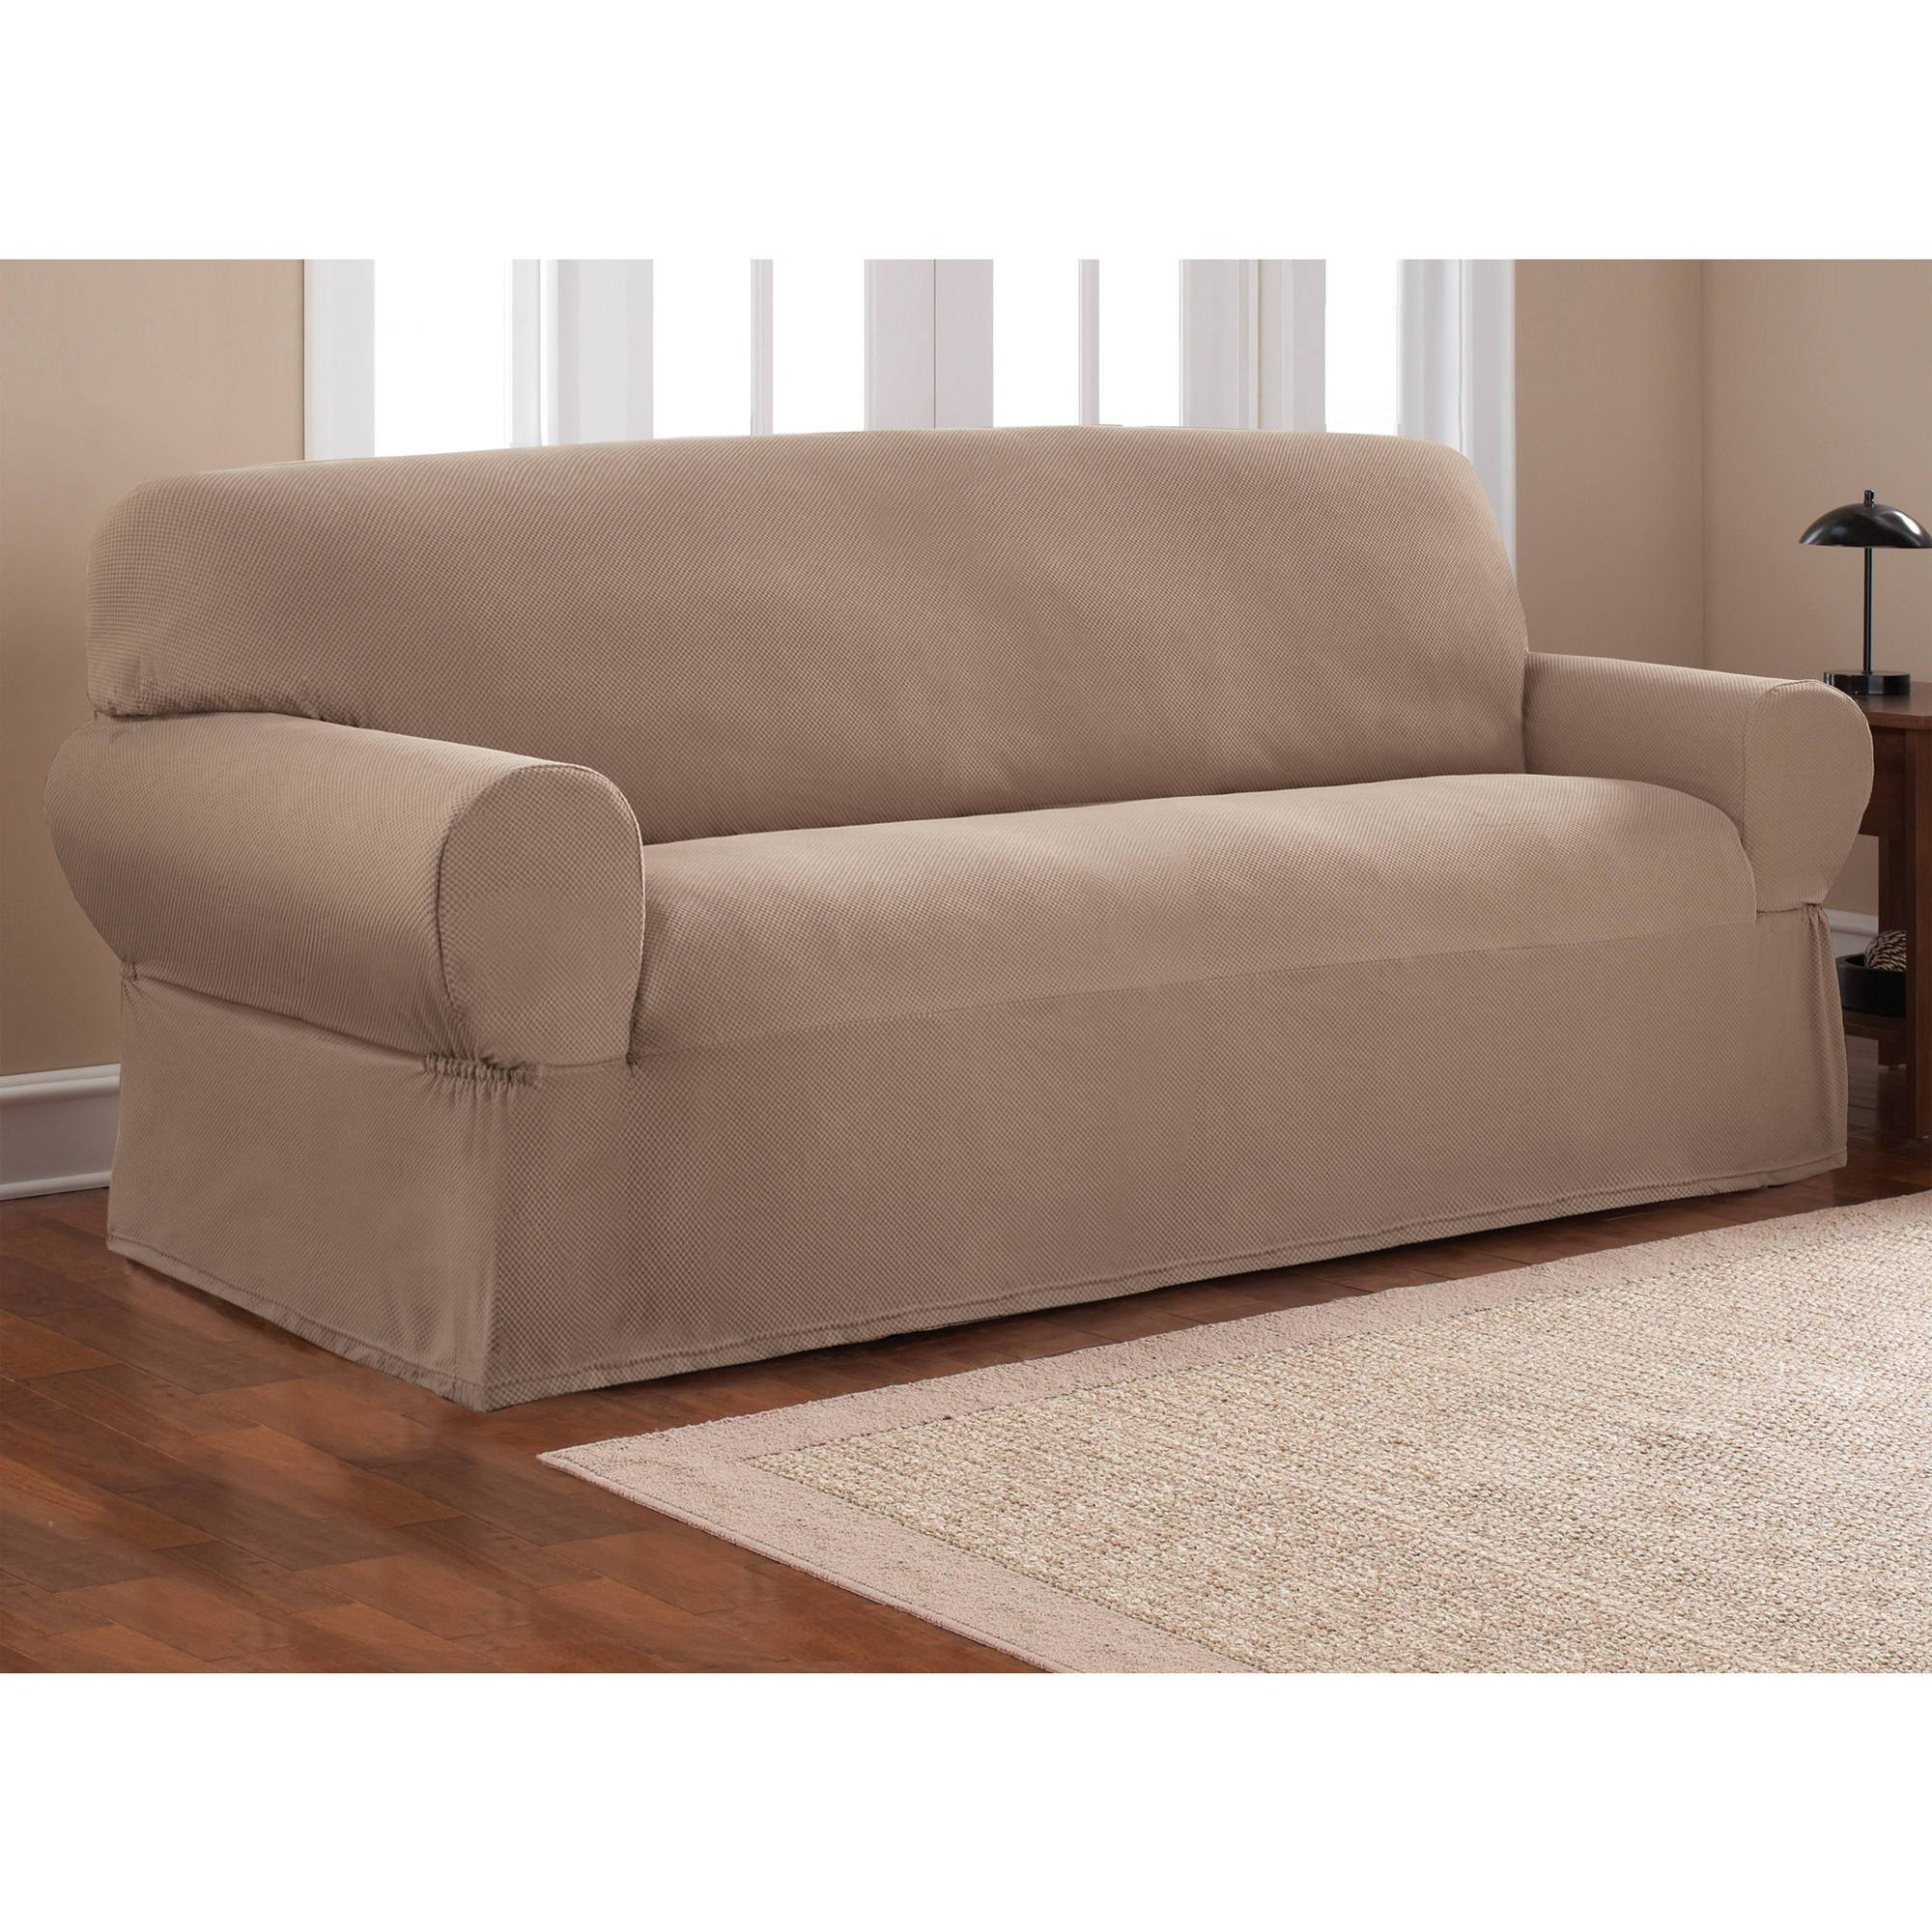 Furniture : Futon Beds Target For Wonderful Home Furniture Ideas throughout Target Couch Beds (Image 3 of 15)